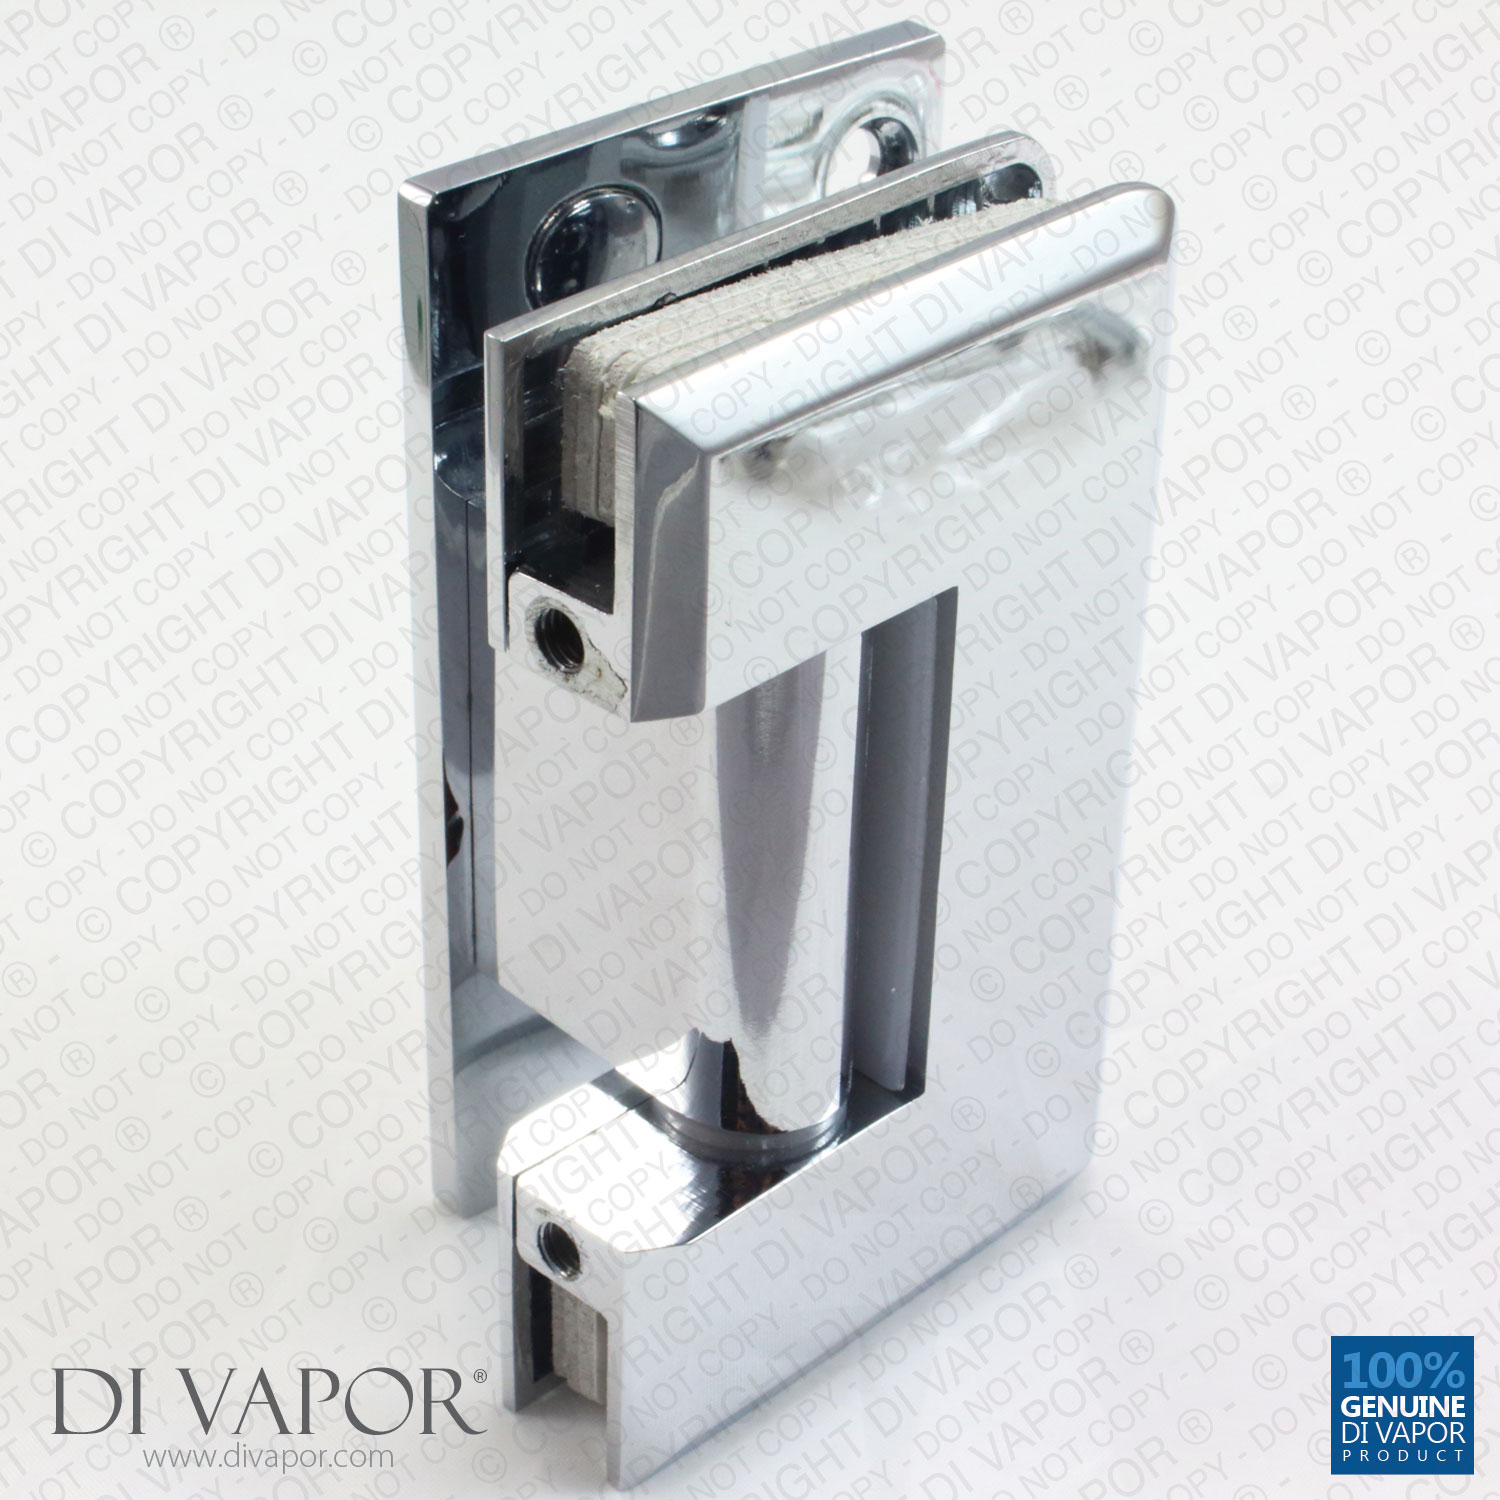 Glass Shower Door Hinges : Degree wall mounted shower door glass hinge chrome